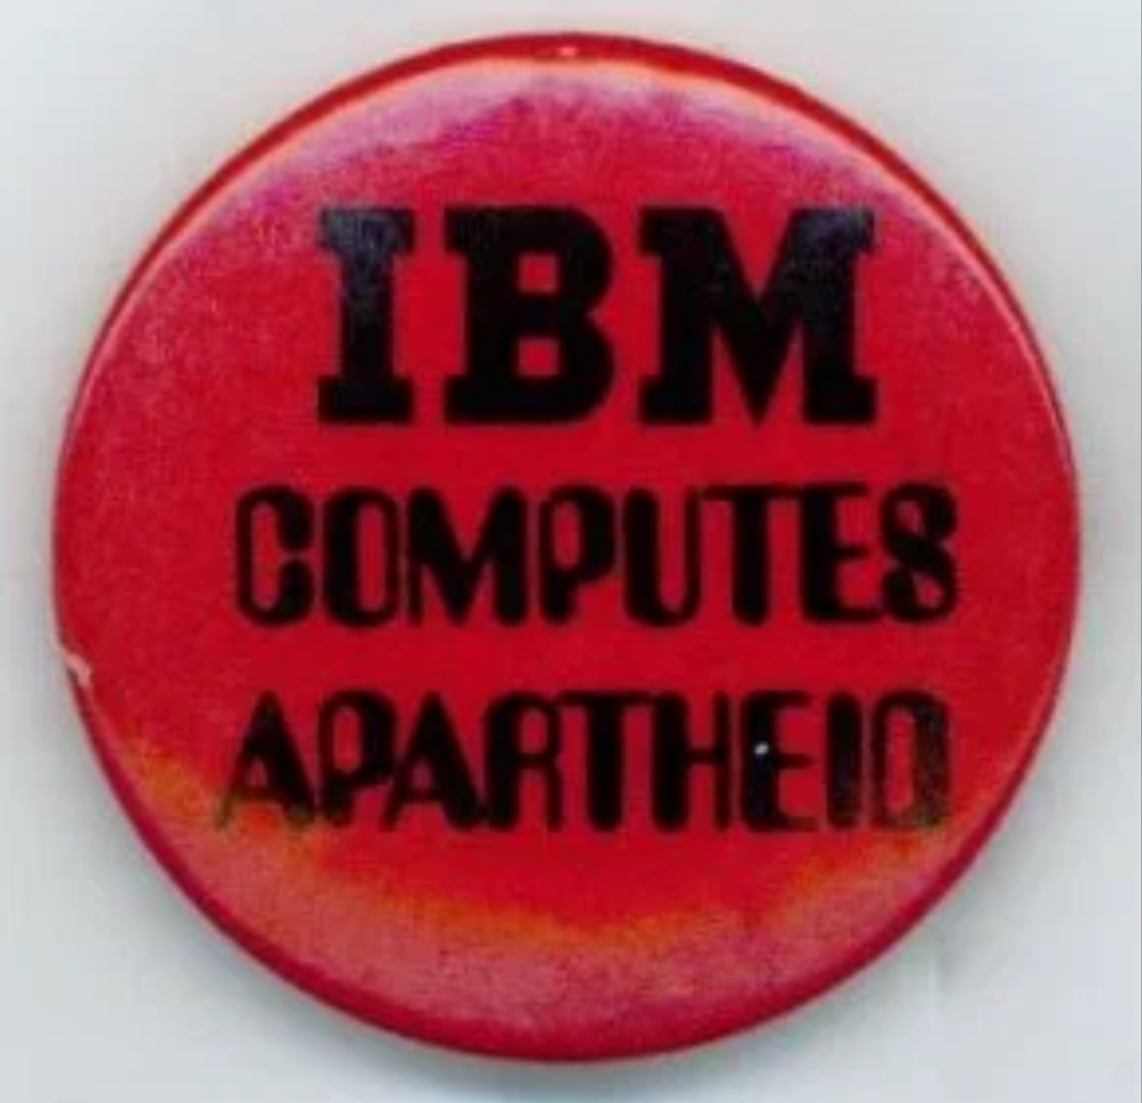 Photo of a red button that reads 'IBM COMPUTES APARTHEID'